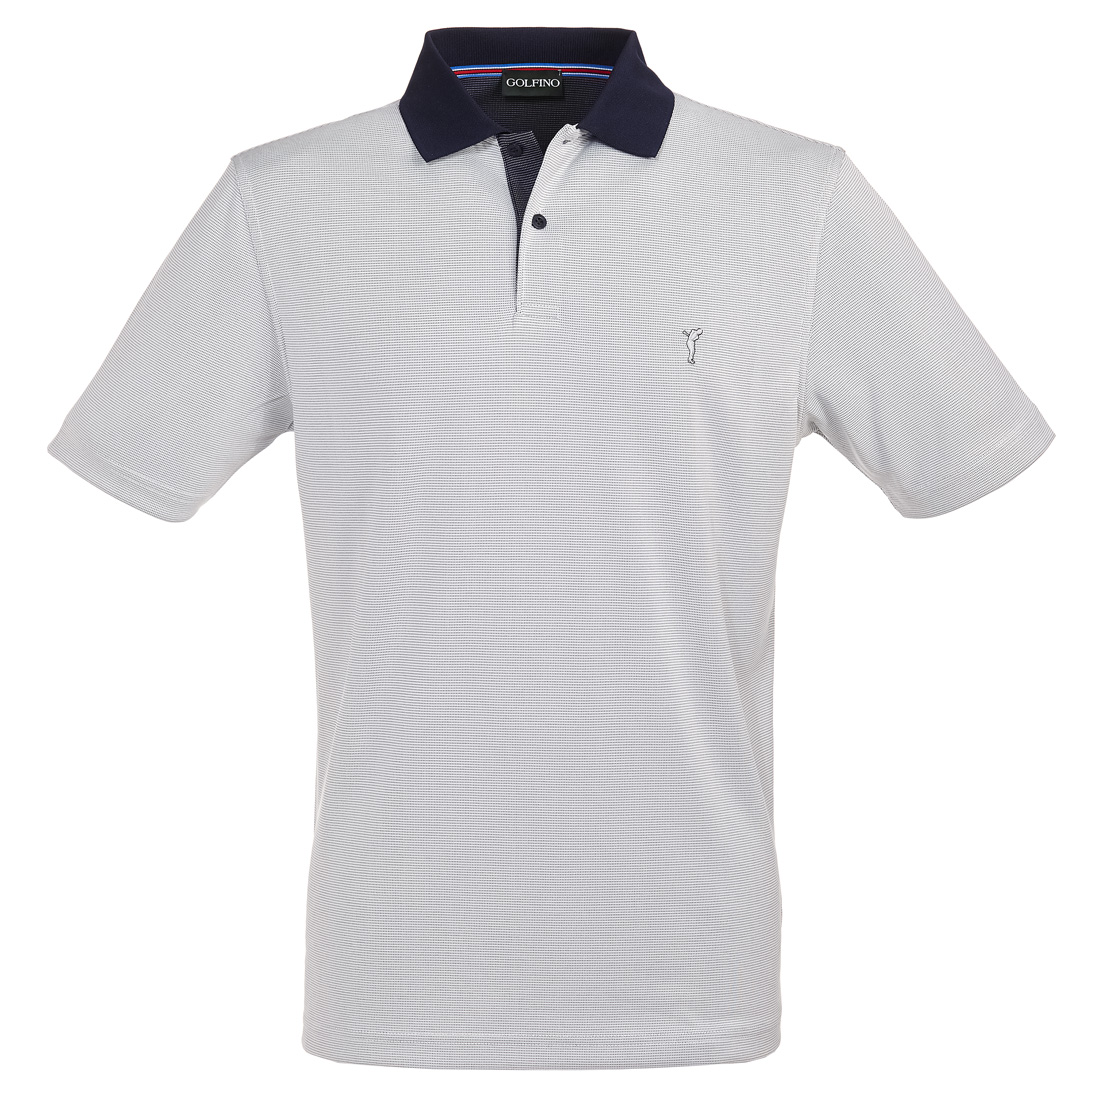 Herren Funktions-Golfpolo Extra Dry